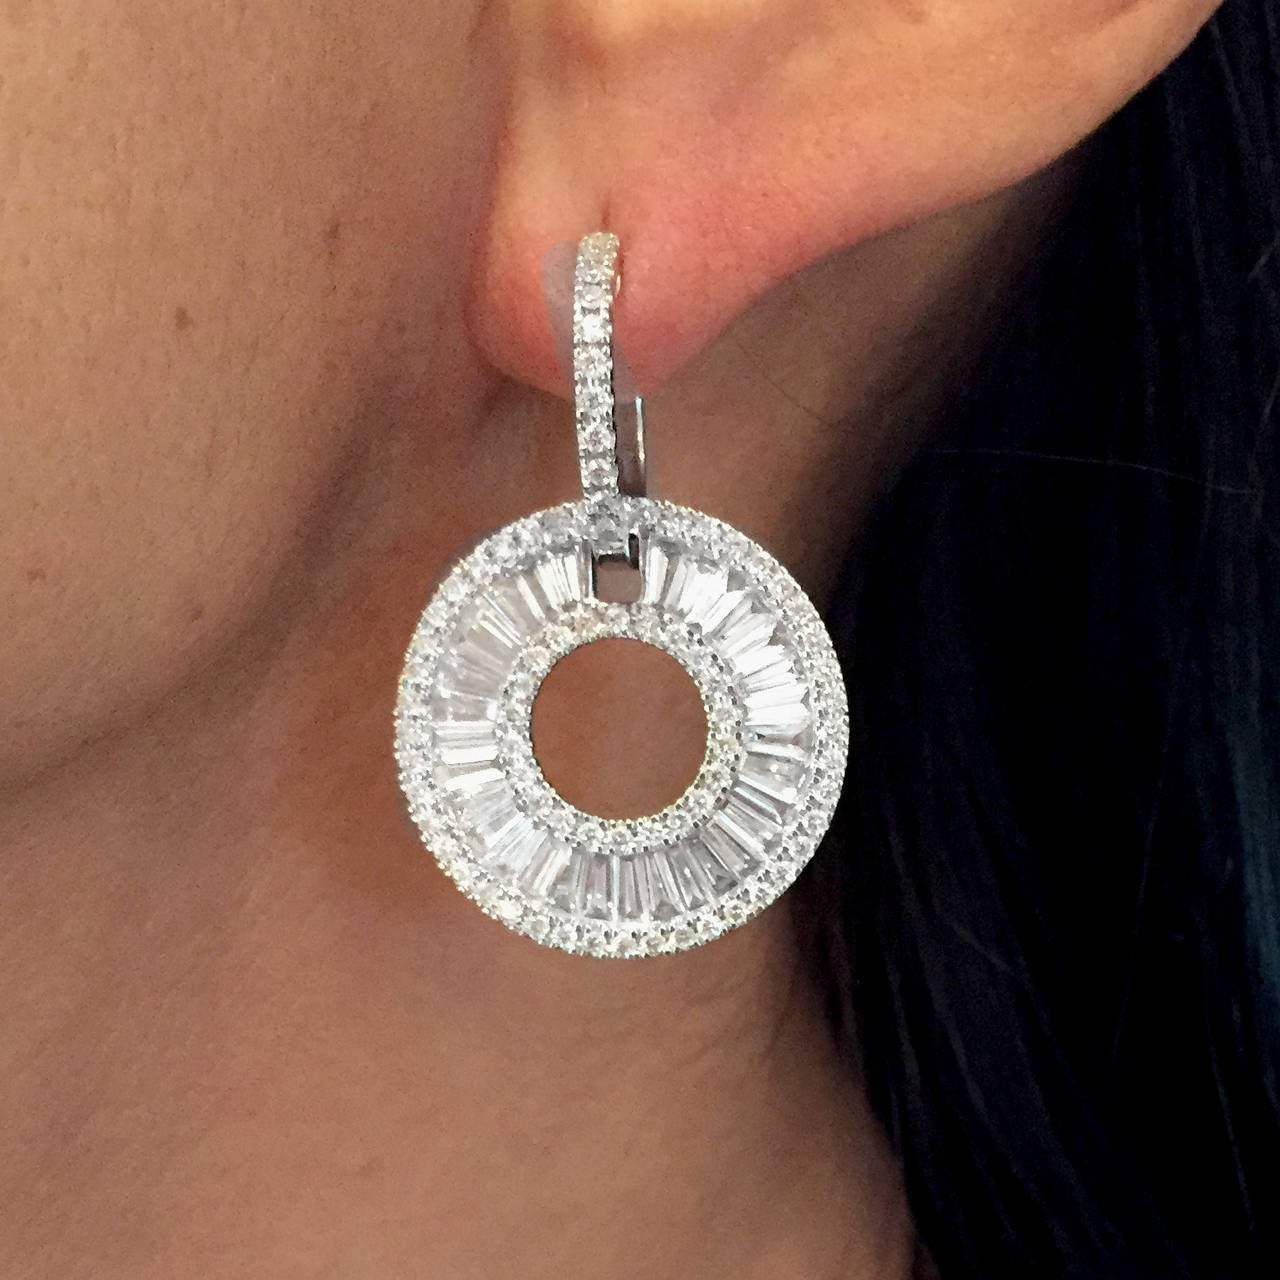 amidon amdhjn baguette earrings and diamond jewelers white gold jewelry round